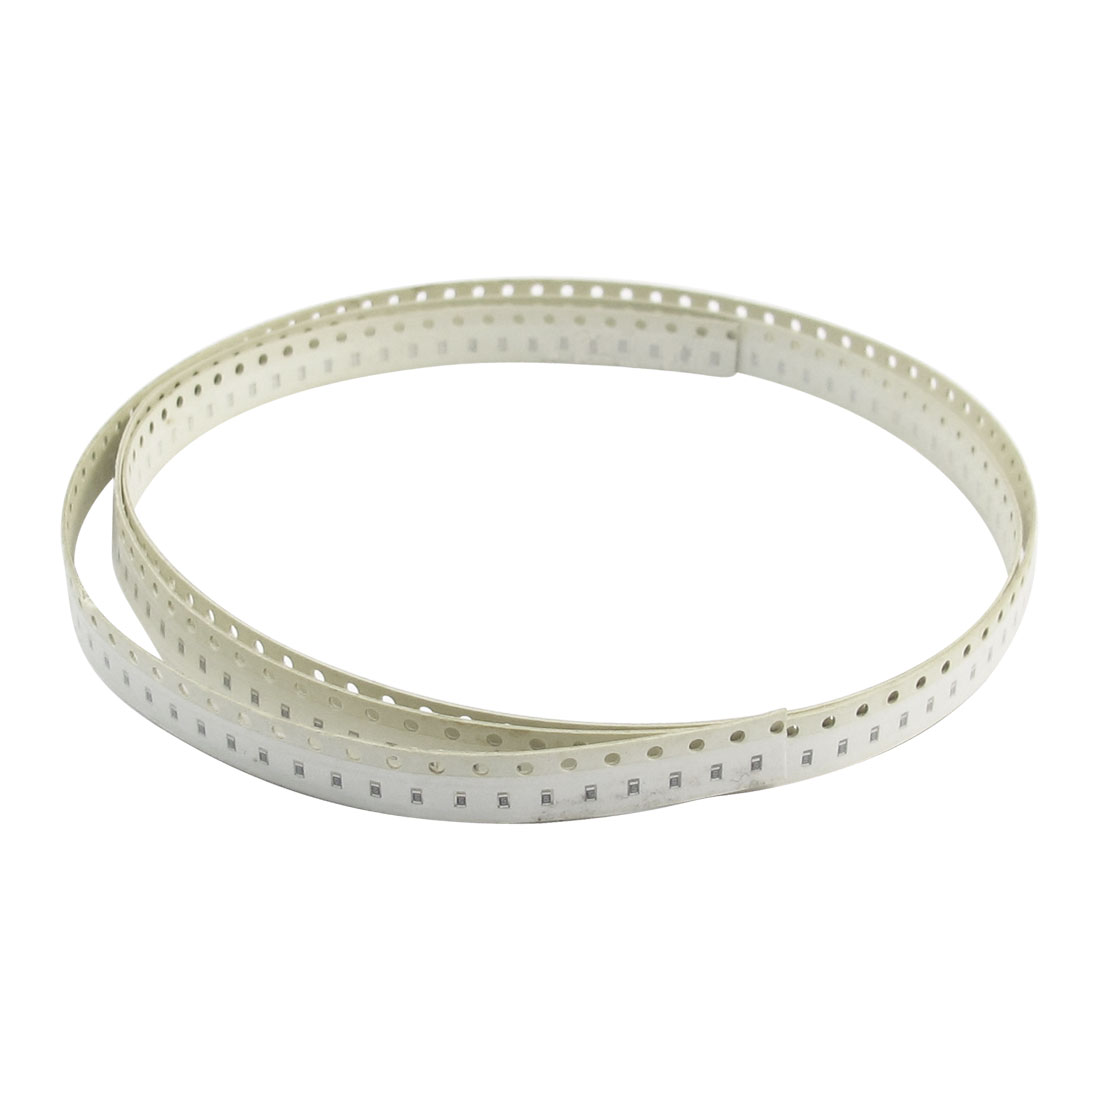 200 Pieces 0603 1608 2.2Ohm Resistance 1/16W Watt 5% Tolerance Surface Mounting SMT SMD Chip Fixed Resistors Strip